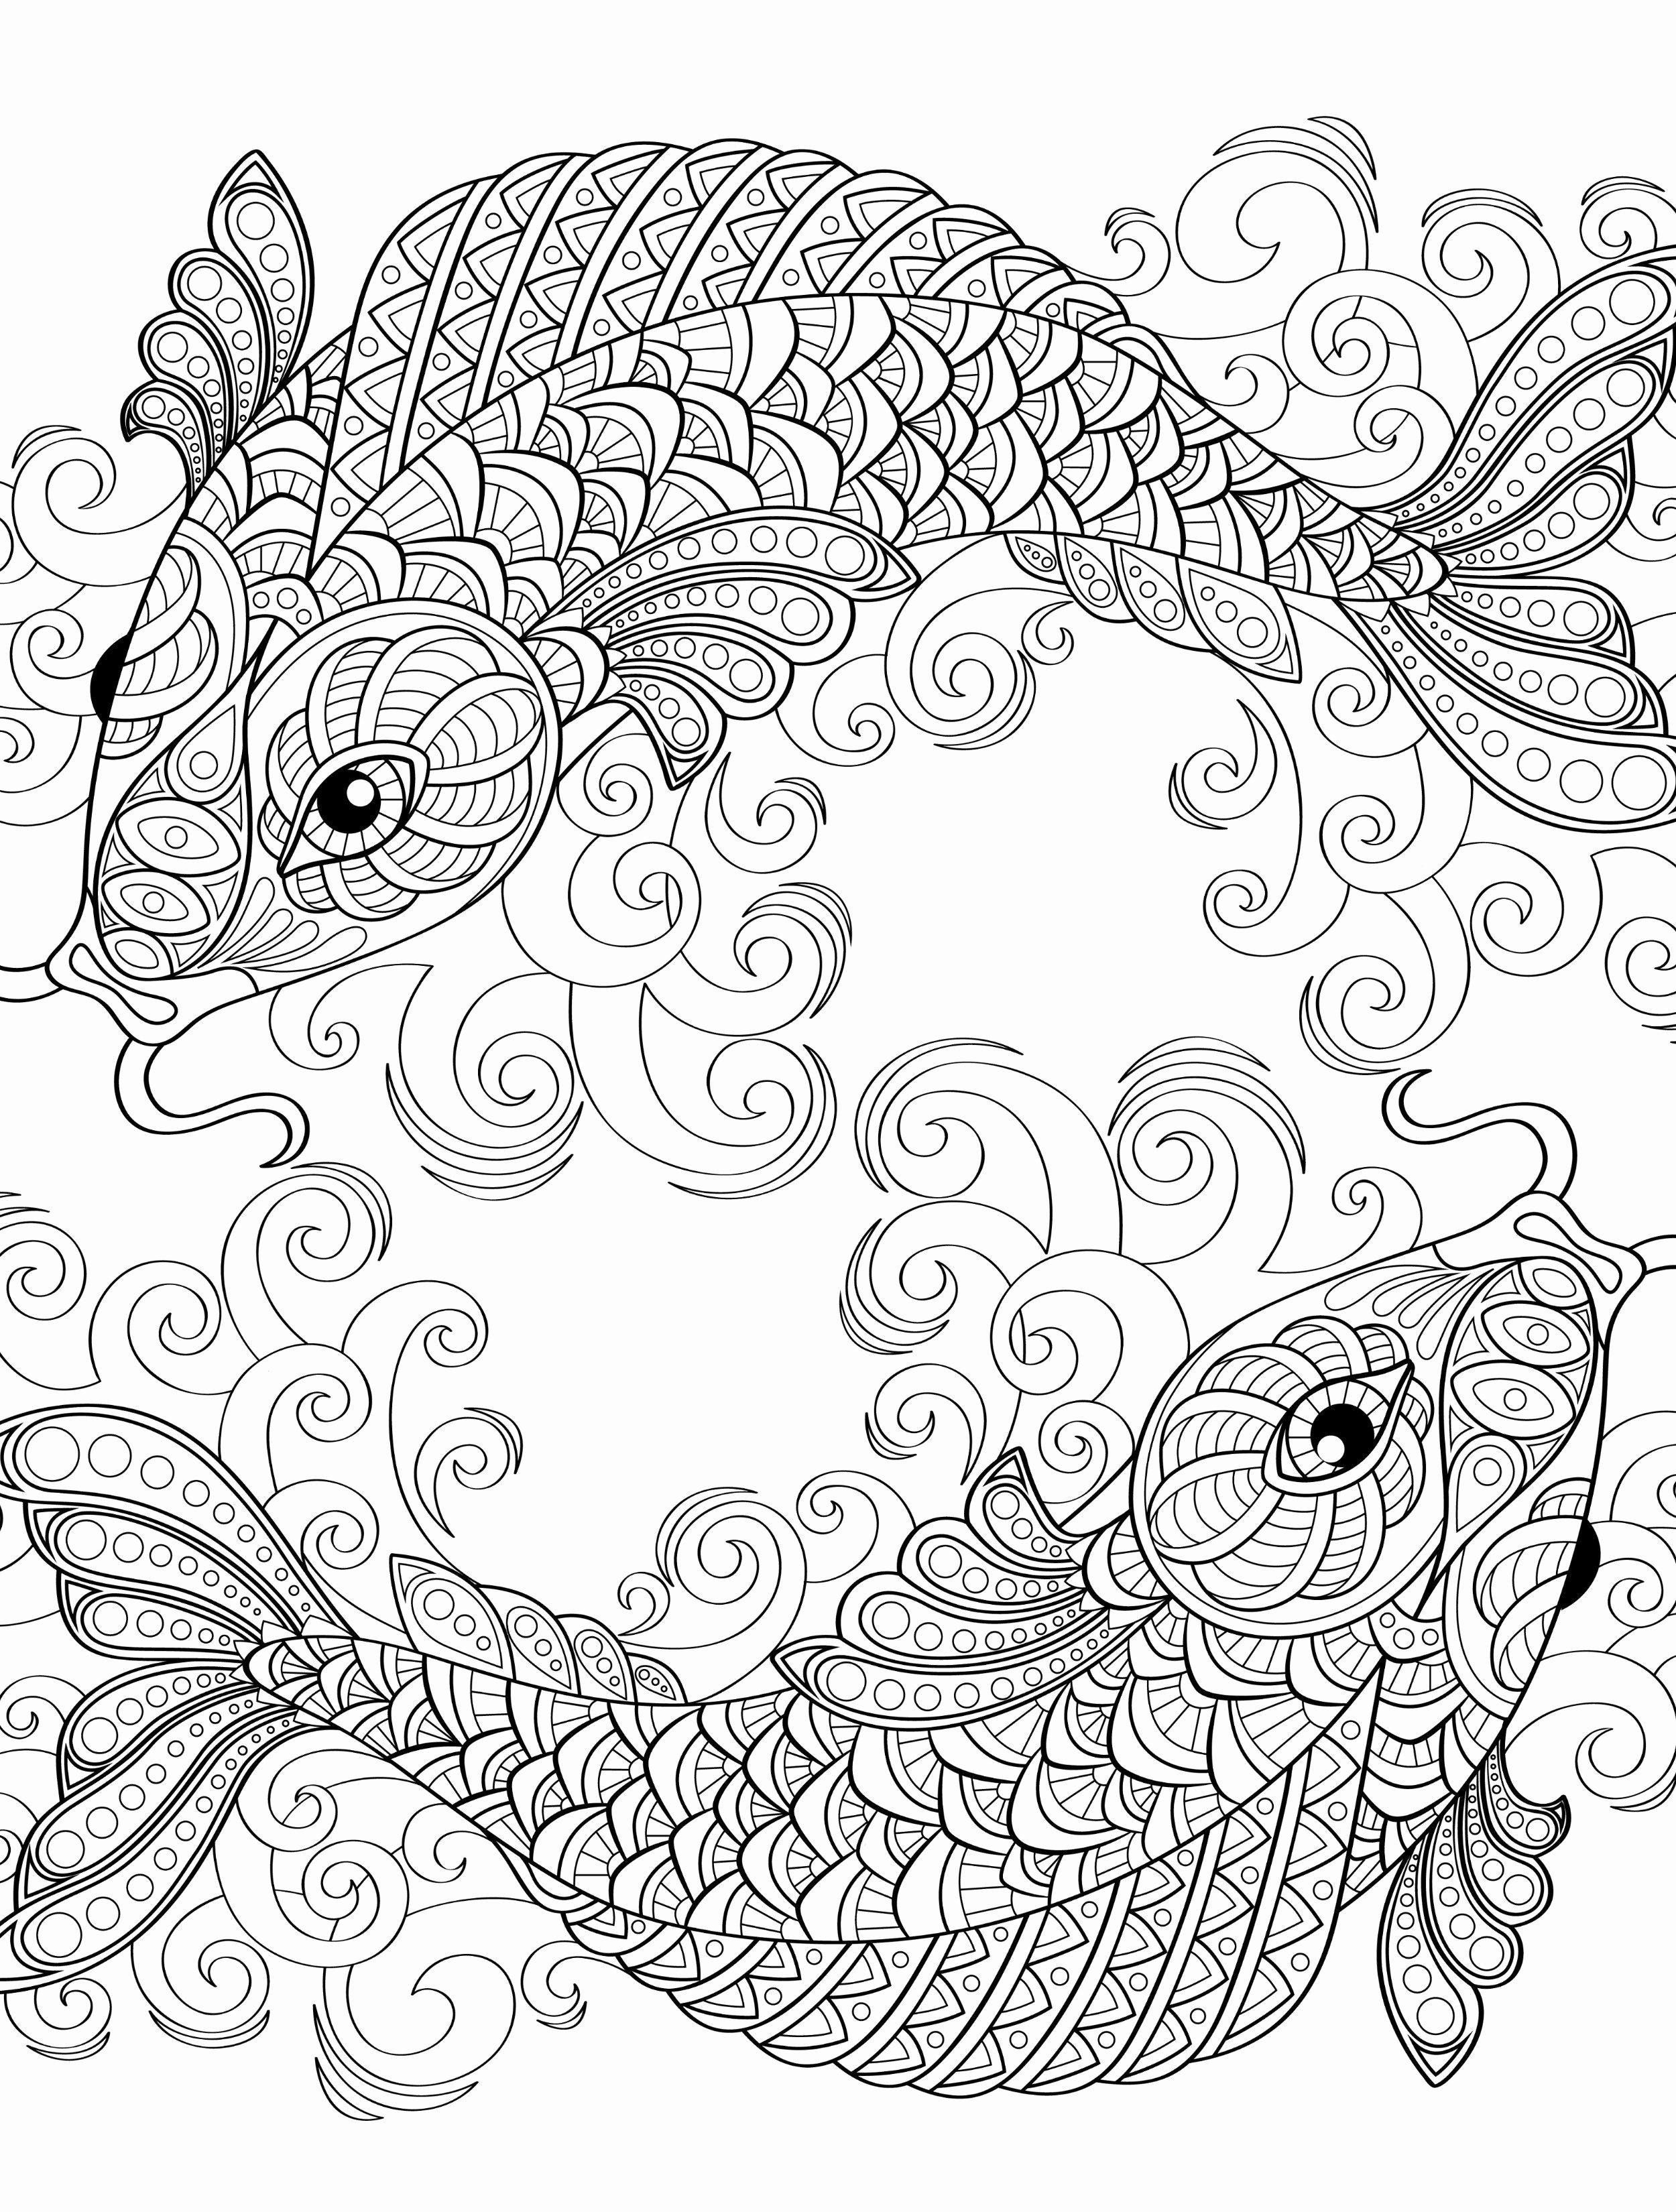 dead fish coloring pages pin on kleurplaten coloring pages dead fish